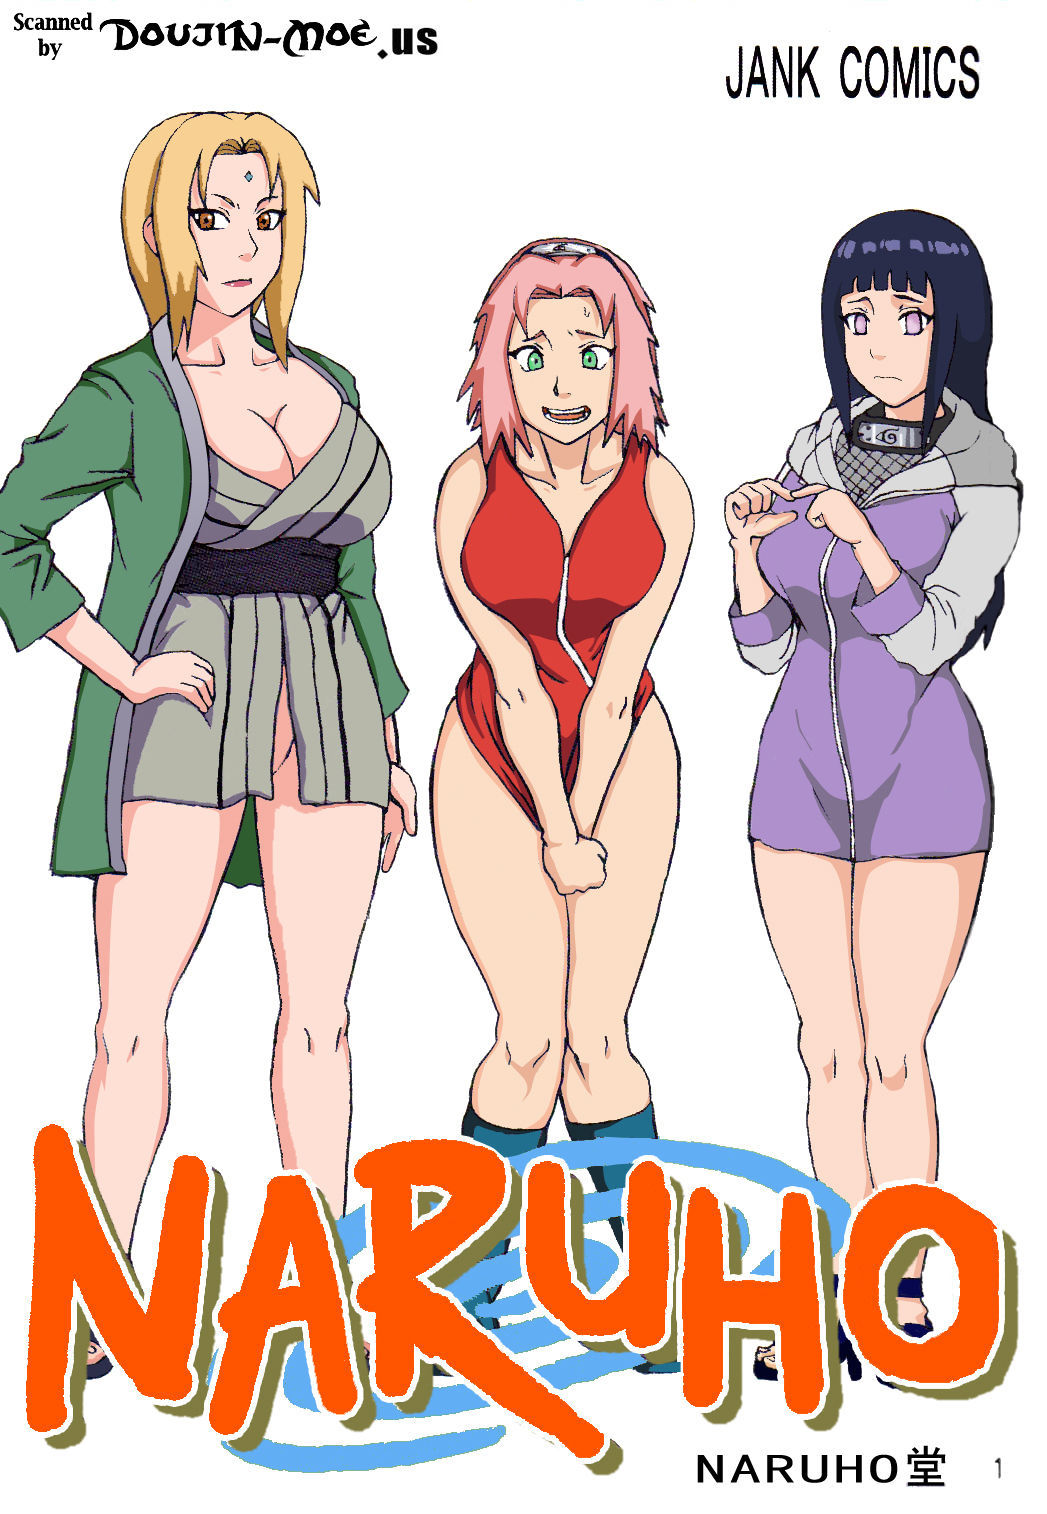 (C72) [Naruho-dou (Naruhodo)] Tsunade no Inchiryou - Tsunade\'s Sexual Therapy (Naruto)  {doujin-moe.us} [Colorized] - part 3